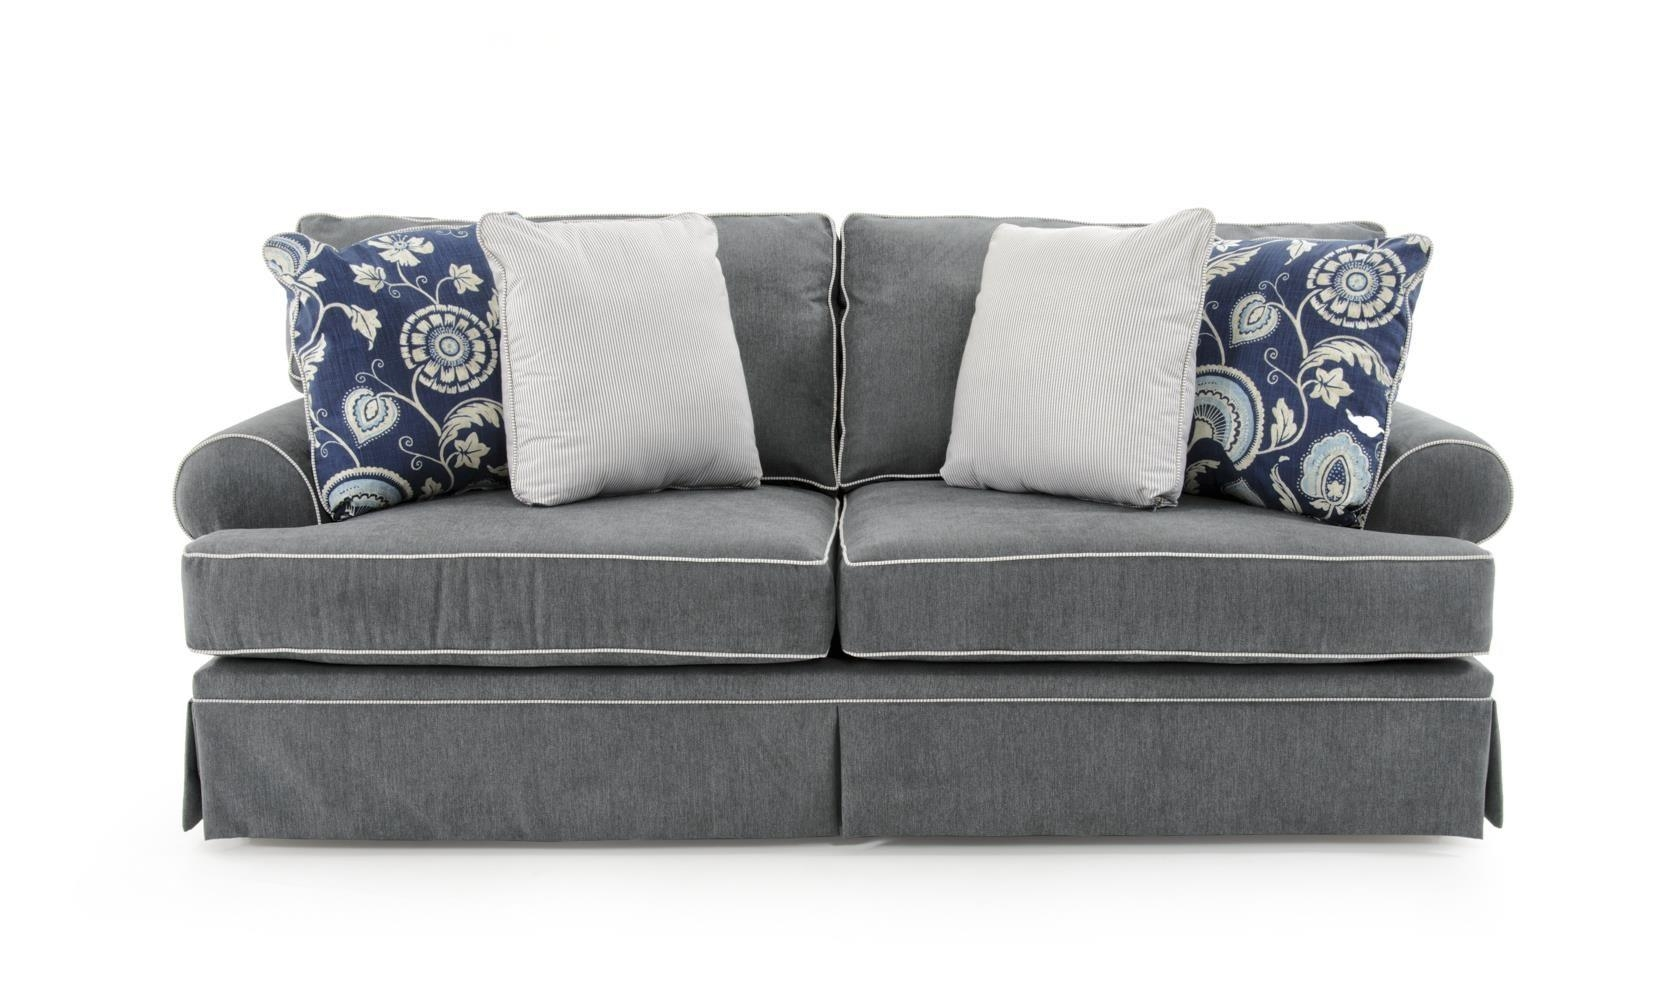 Broyhill Furniture Emily Queen Goodnight Sleeper Sofa – Baer's Intended For Emily Sofas (View 10 of 20)